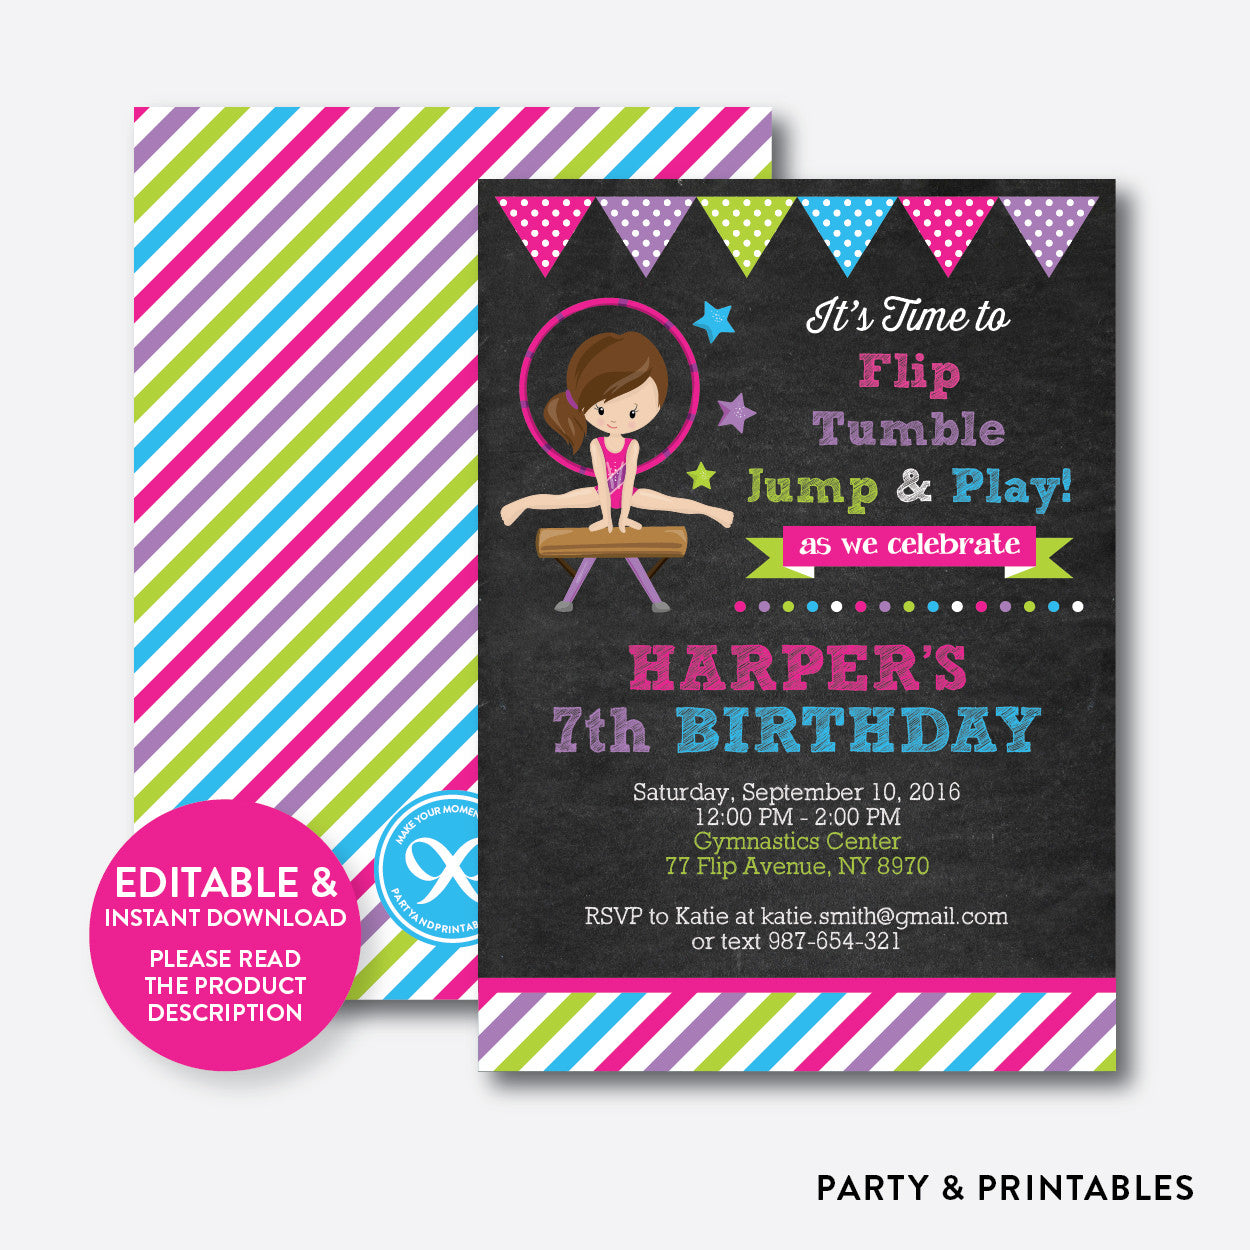 Gymnastics Chalkboard Kids Birthday Invitation / Editable / Instant Download (CKB.468), invitation - Party and Printables